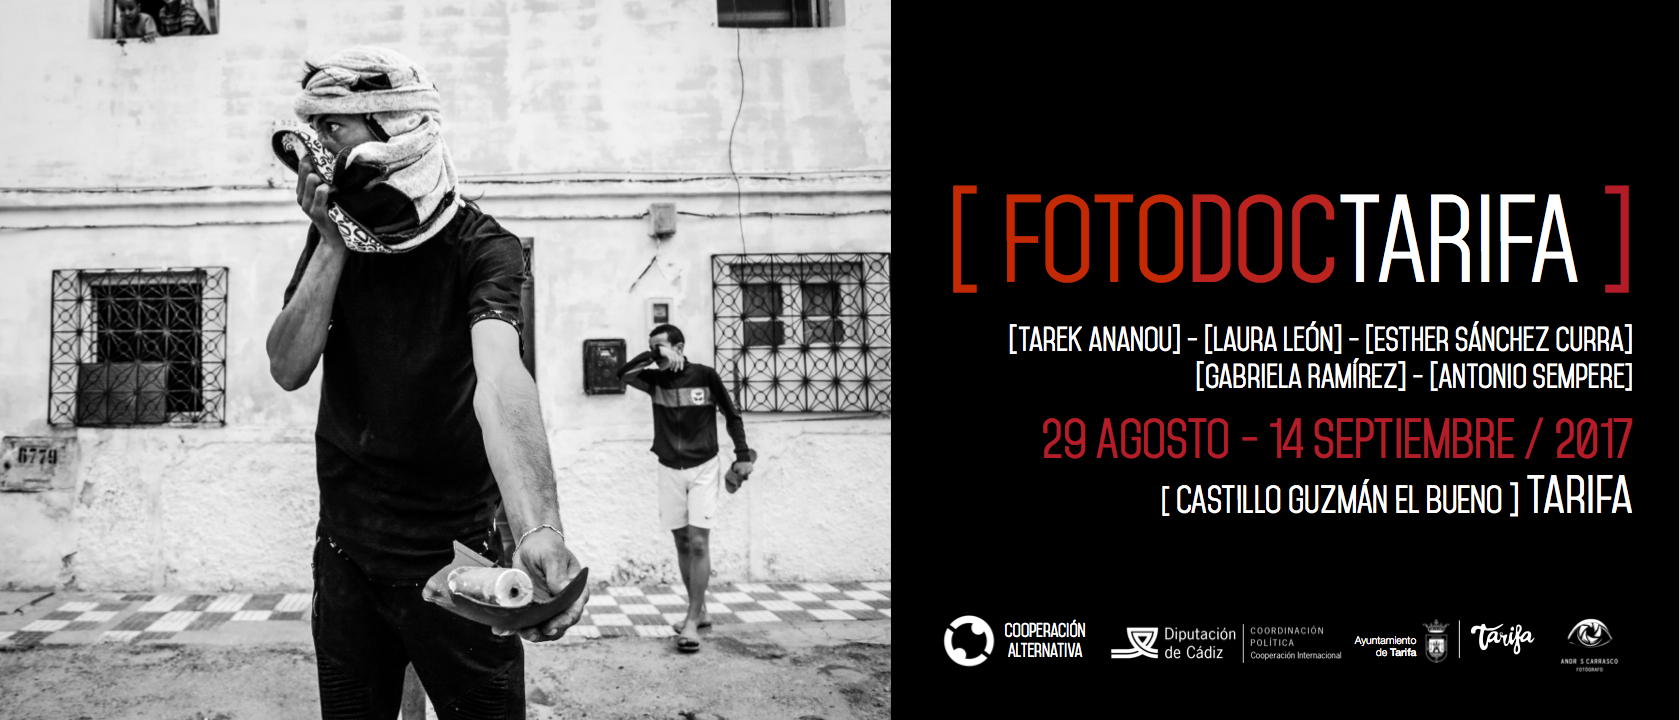 [FOTODOCTARIFA] Lecture on Documentary photography and Human Rights